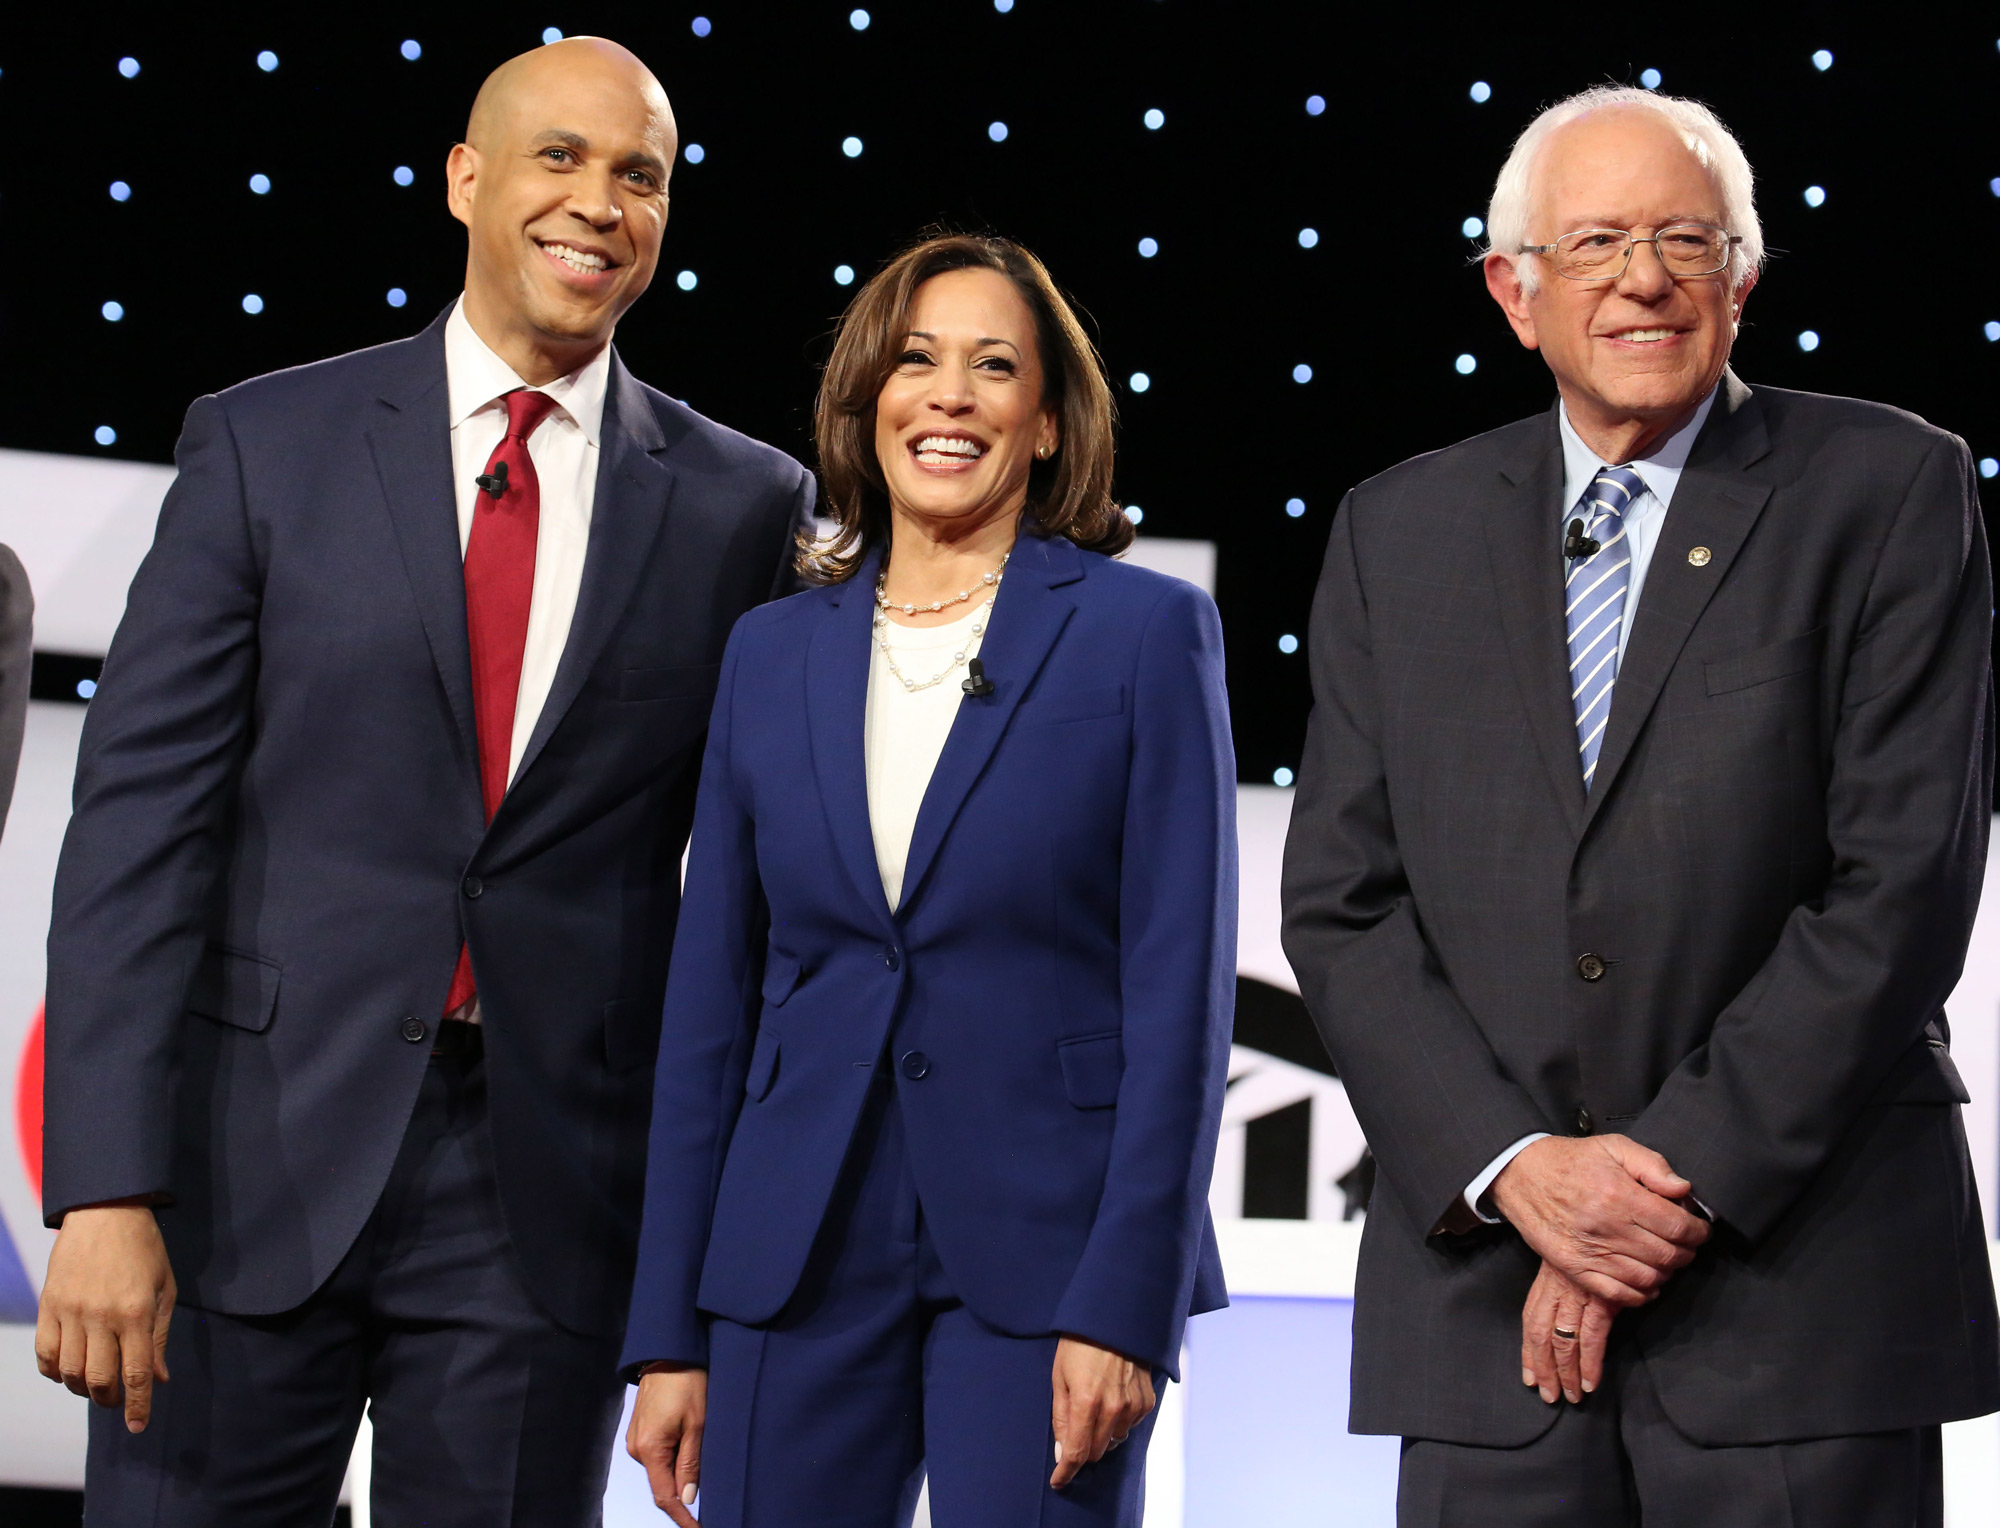 This Primary's Real Loser Is Diversity